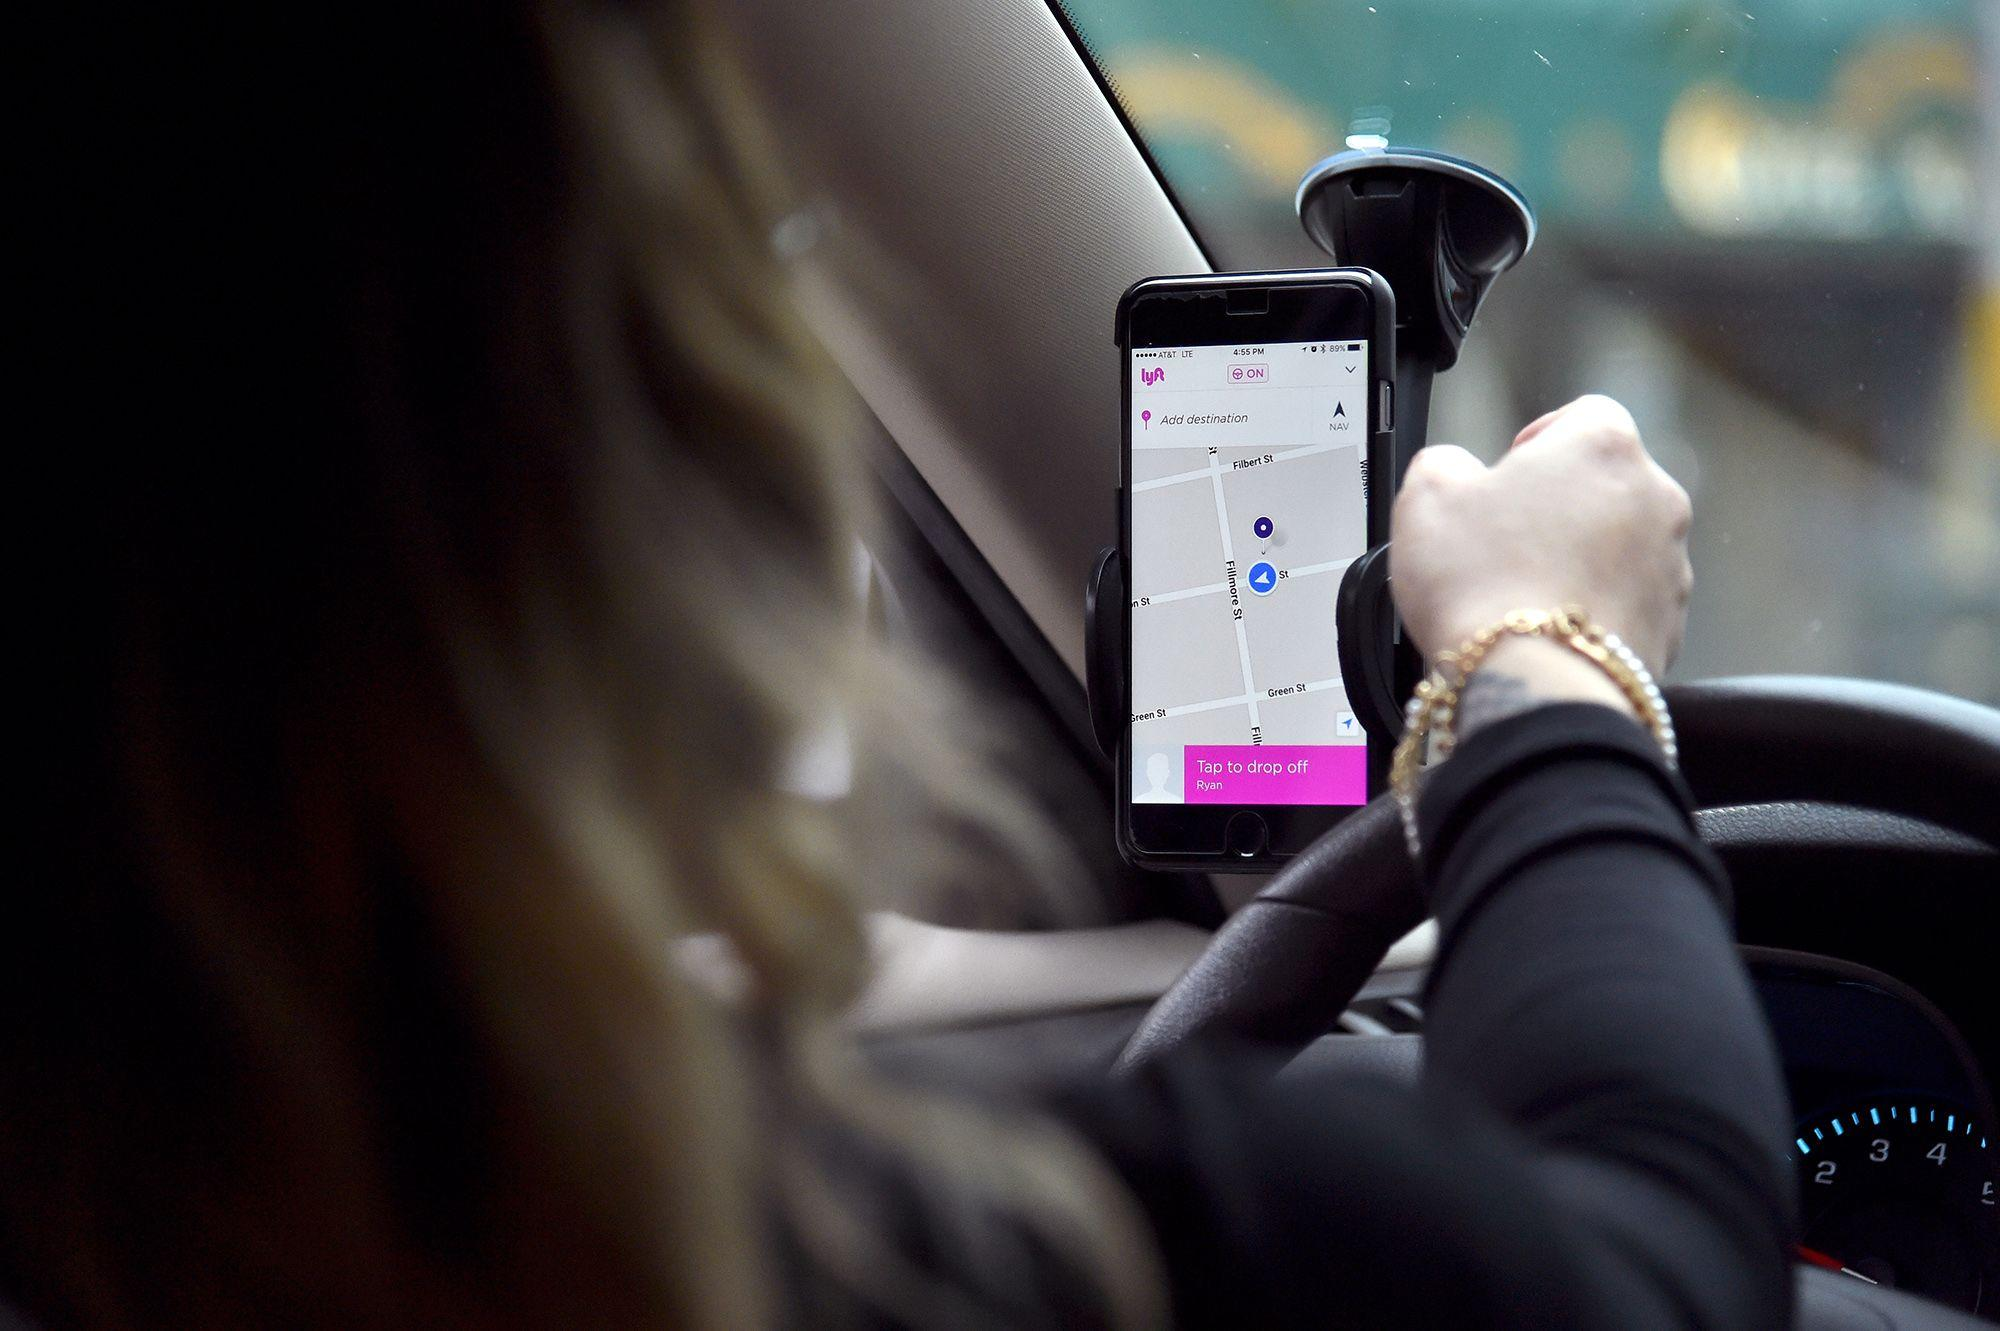 Uber, Lyft May Face More Federal Oversight, Lawmaker Warns